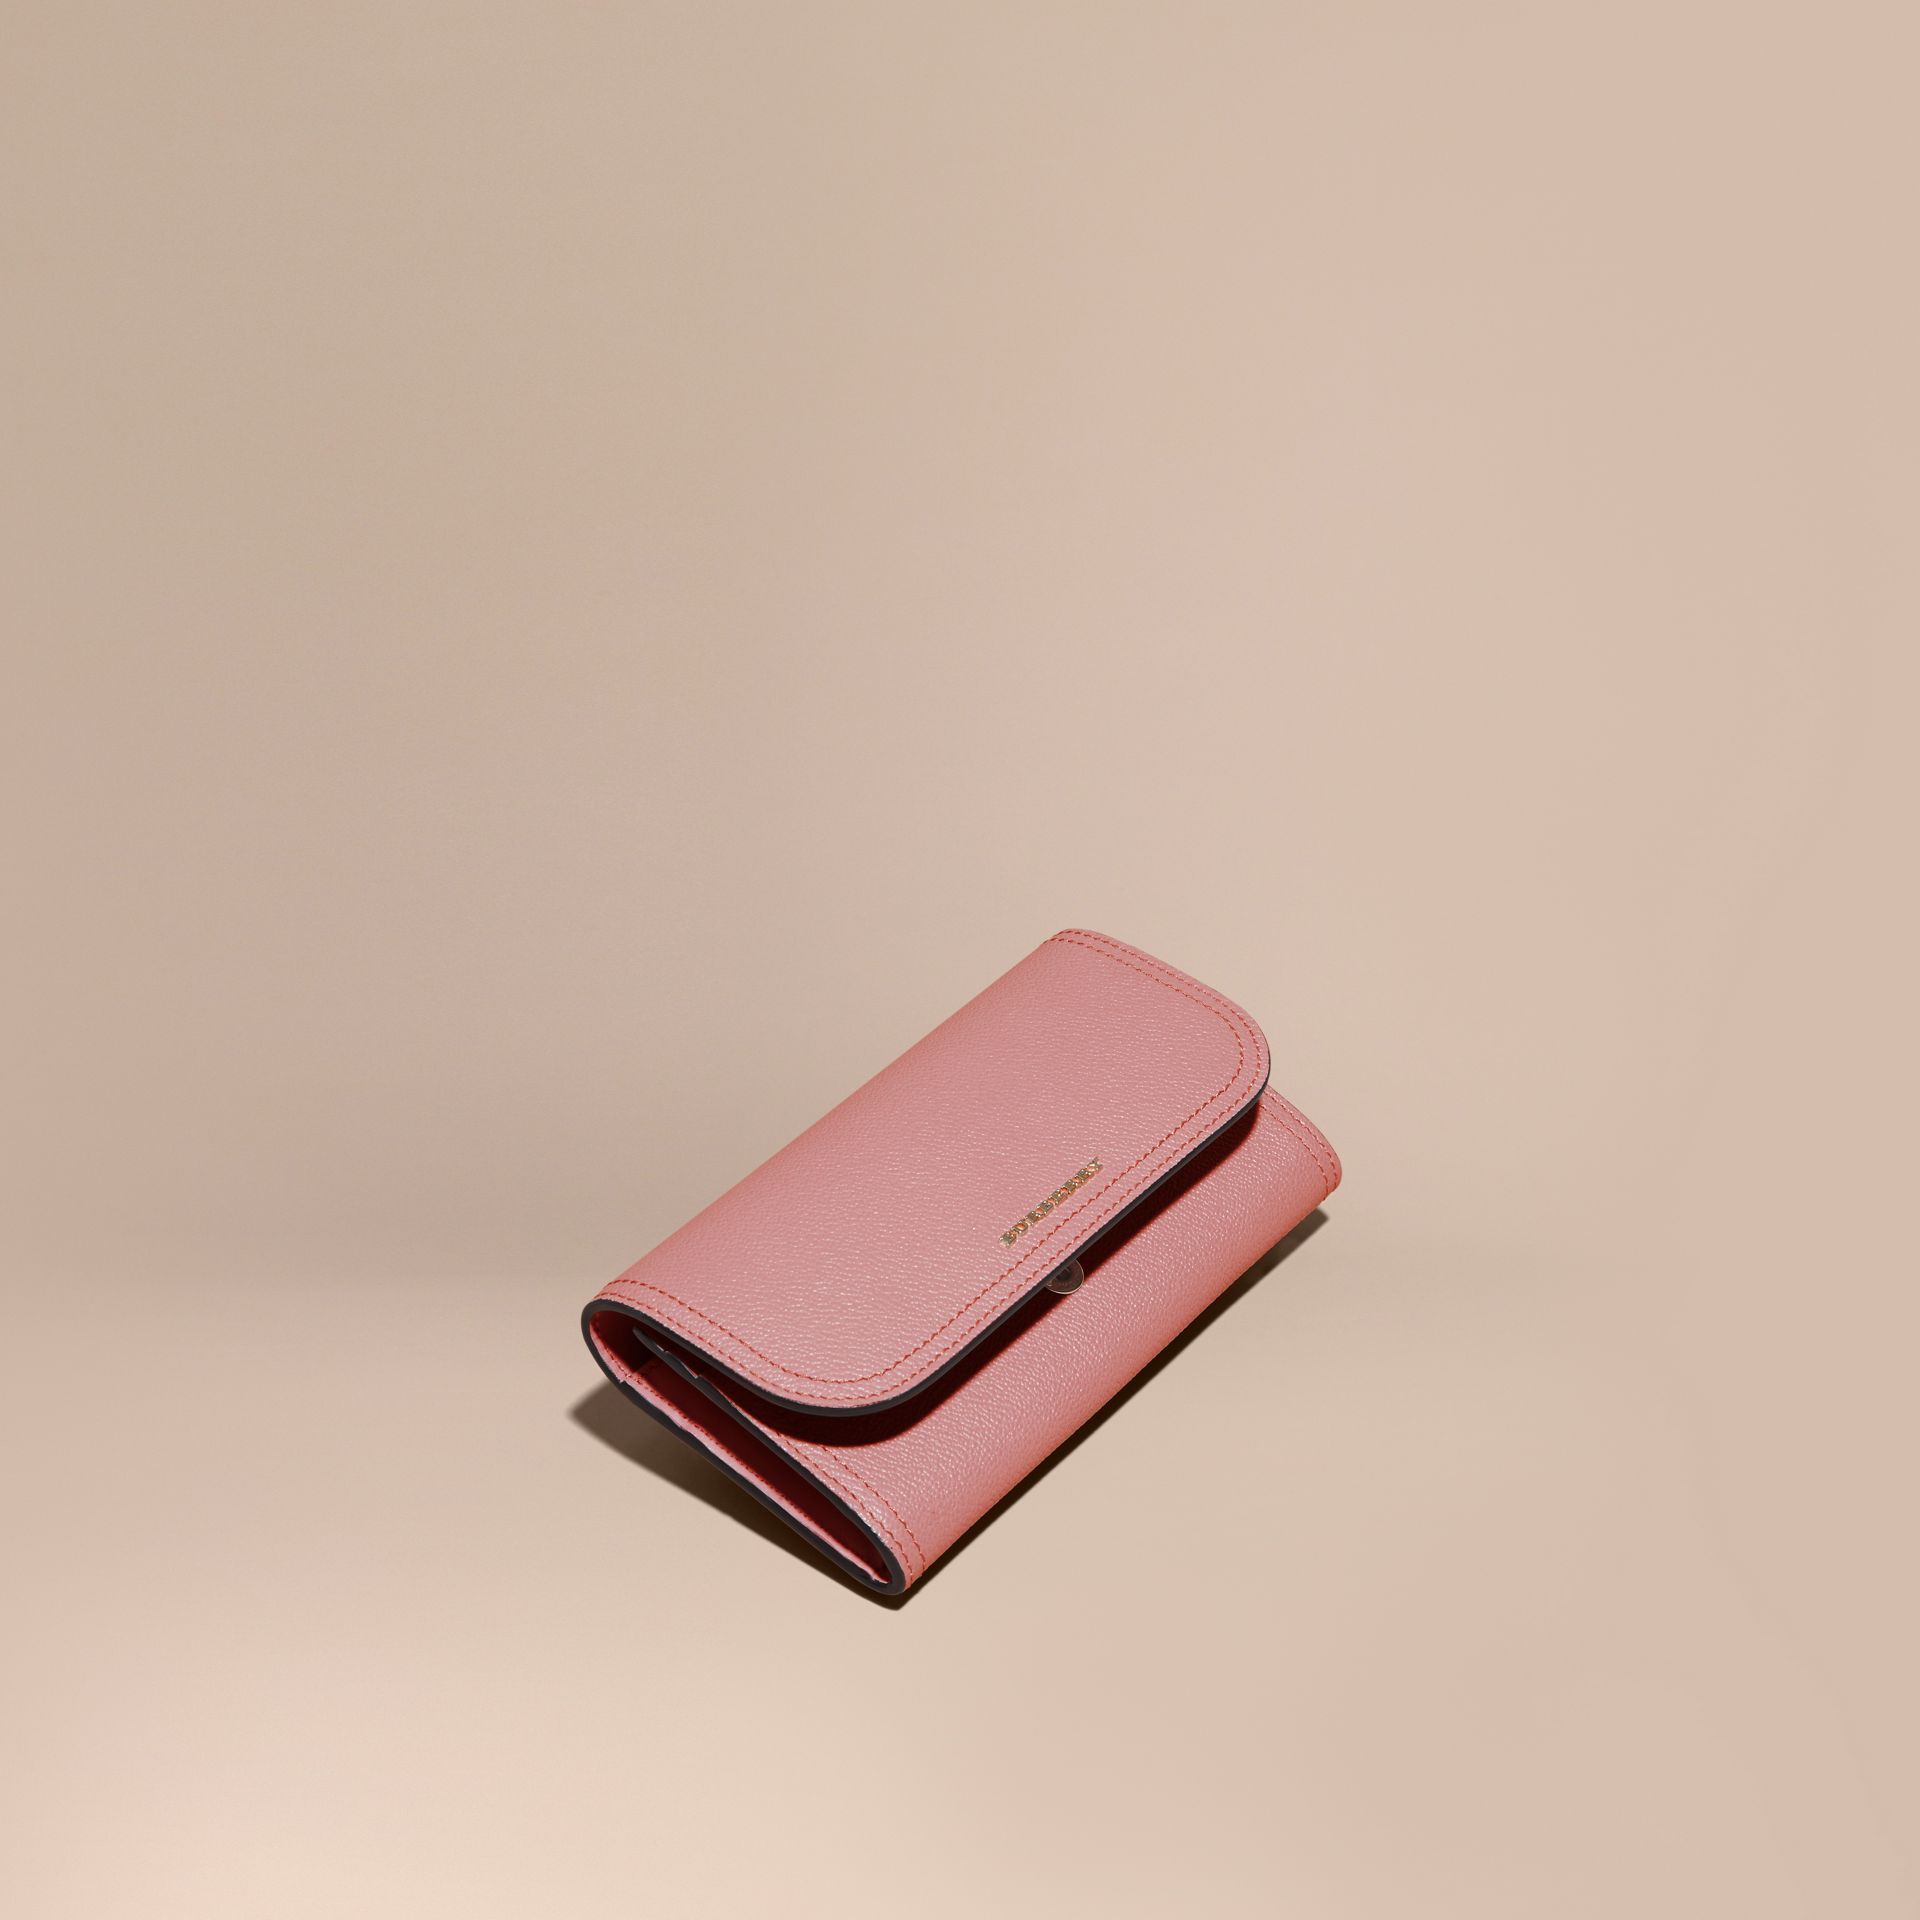 Grainy Leather Slim Continental Wallet in Dusty Pink - Women | Burberry - gallery image 1